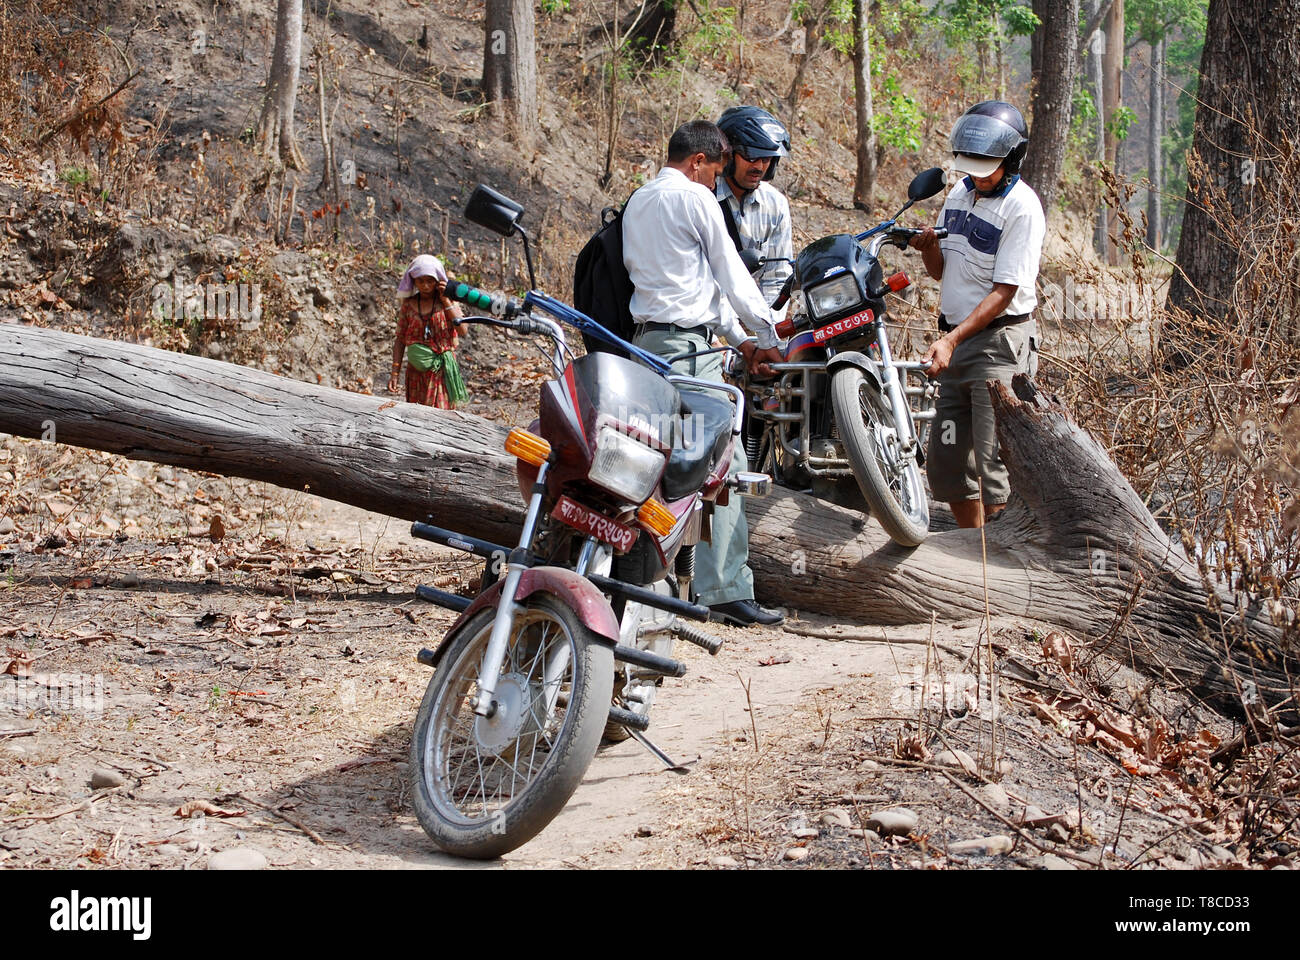 Group of motorcyclists in forest, road blocked by falling trees. Problems because bad weather - weather damages - Stock Image